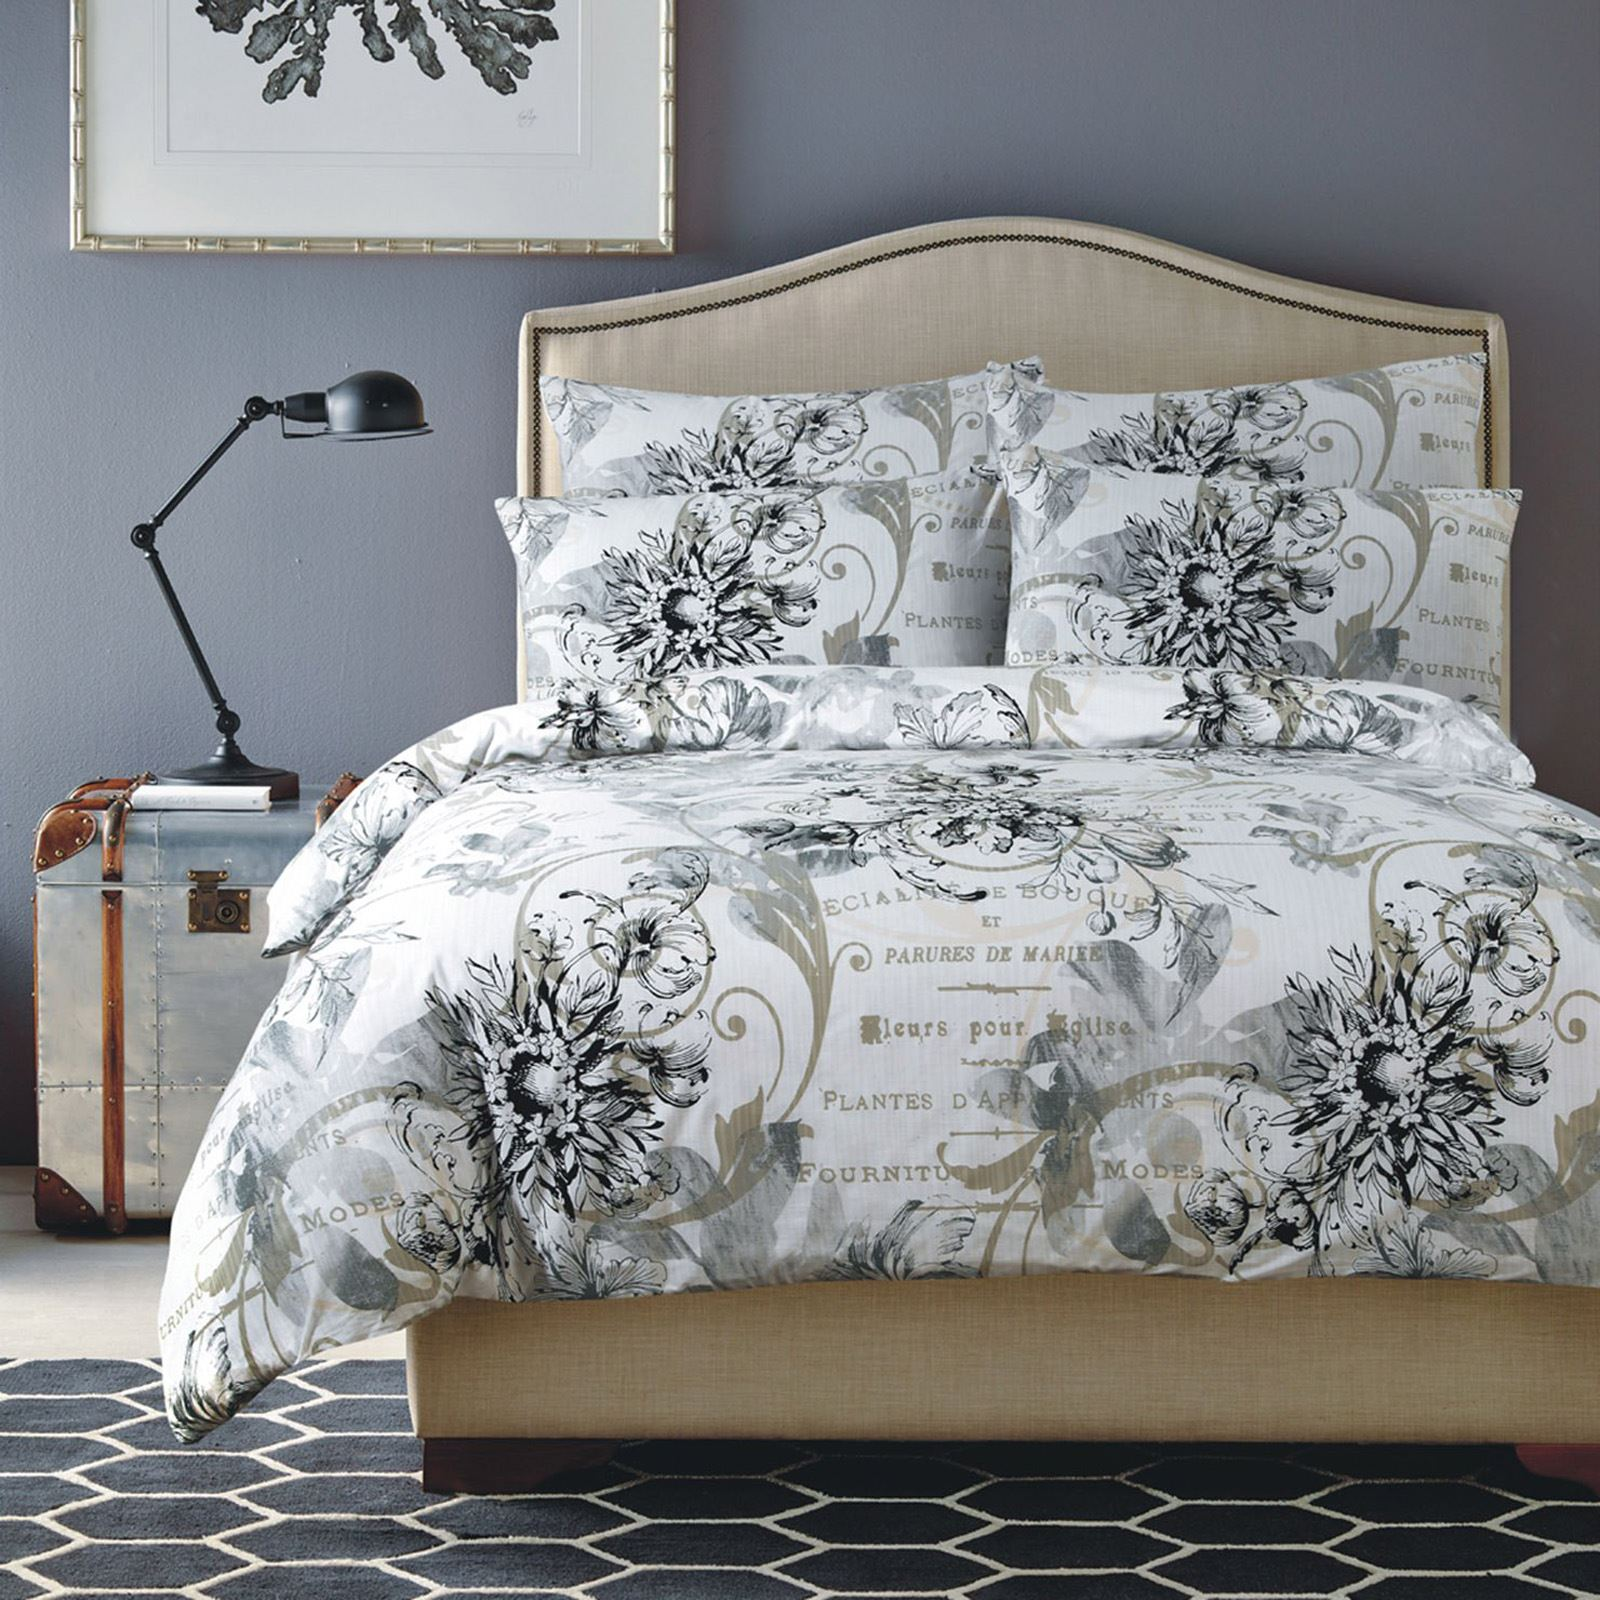 Shabby chic grey and black floral pattern with french phrases contemporary bed linens in refreshing colour palettes to update your home decor